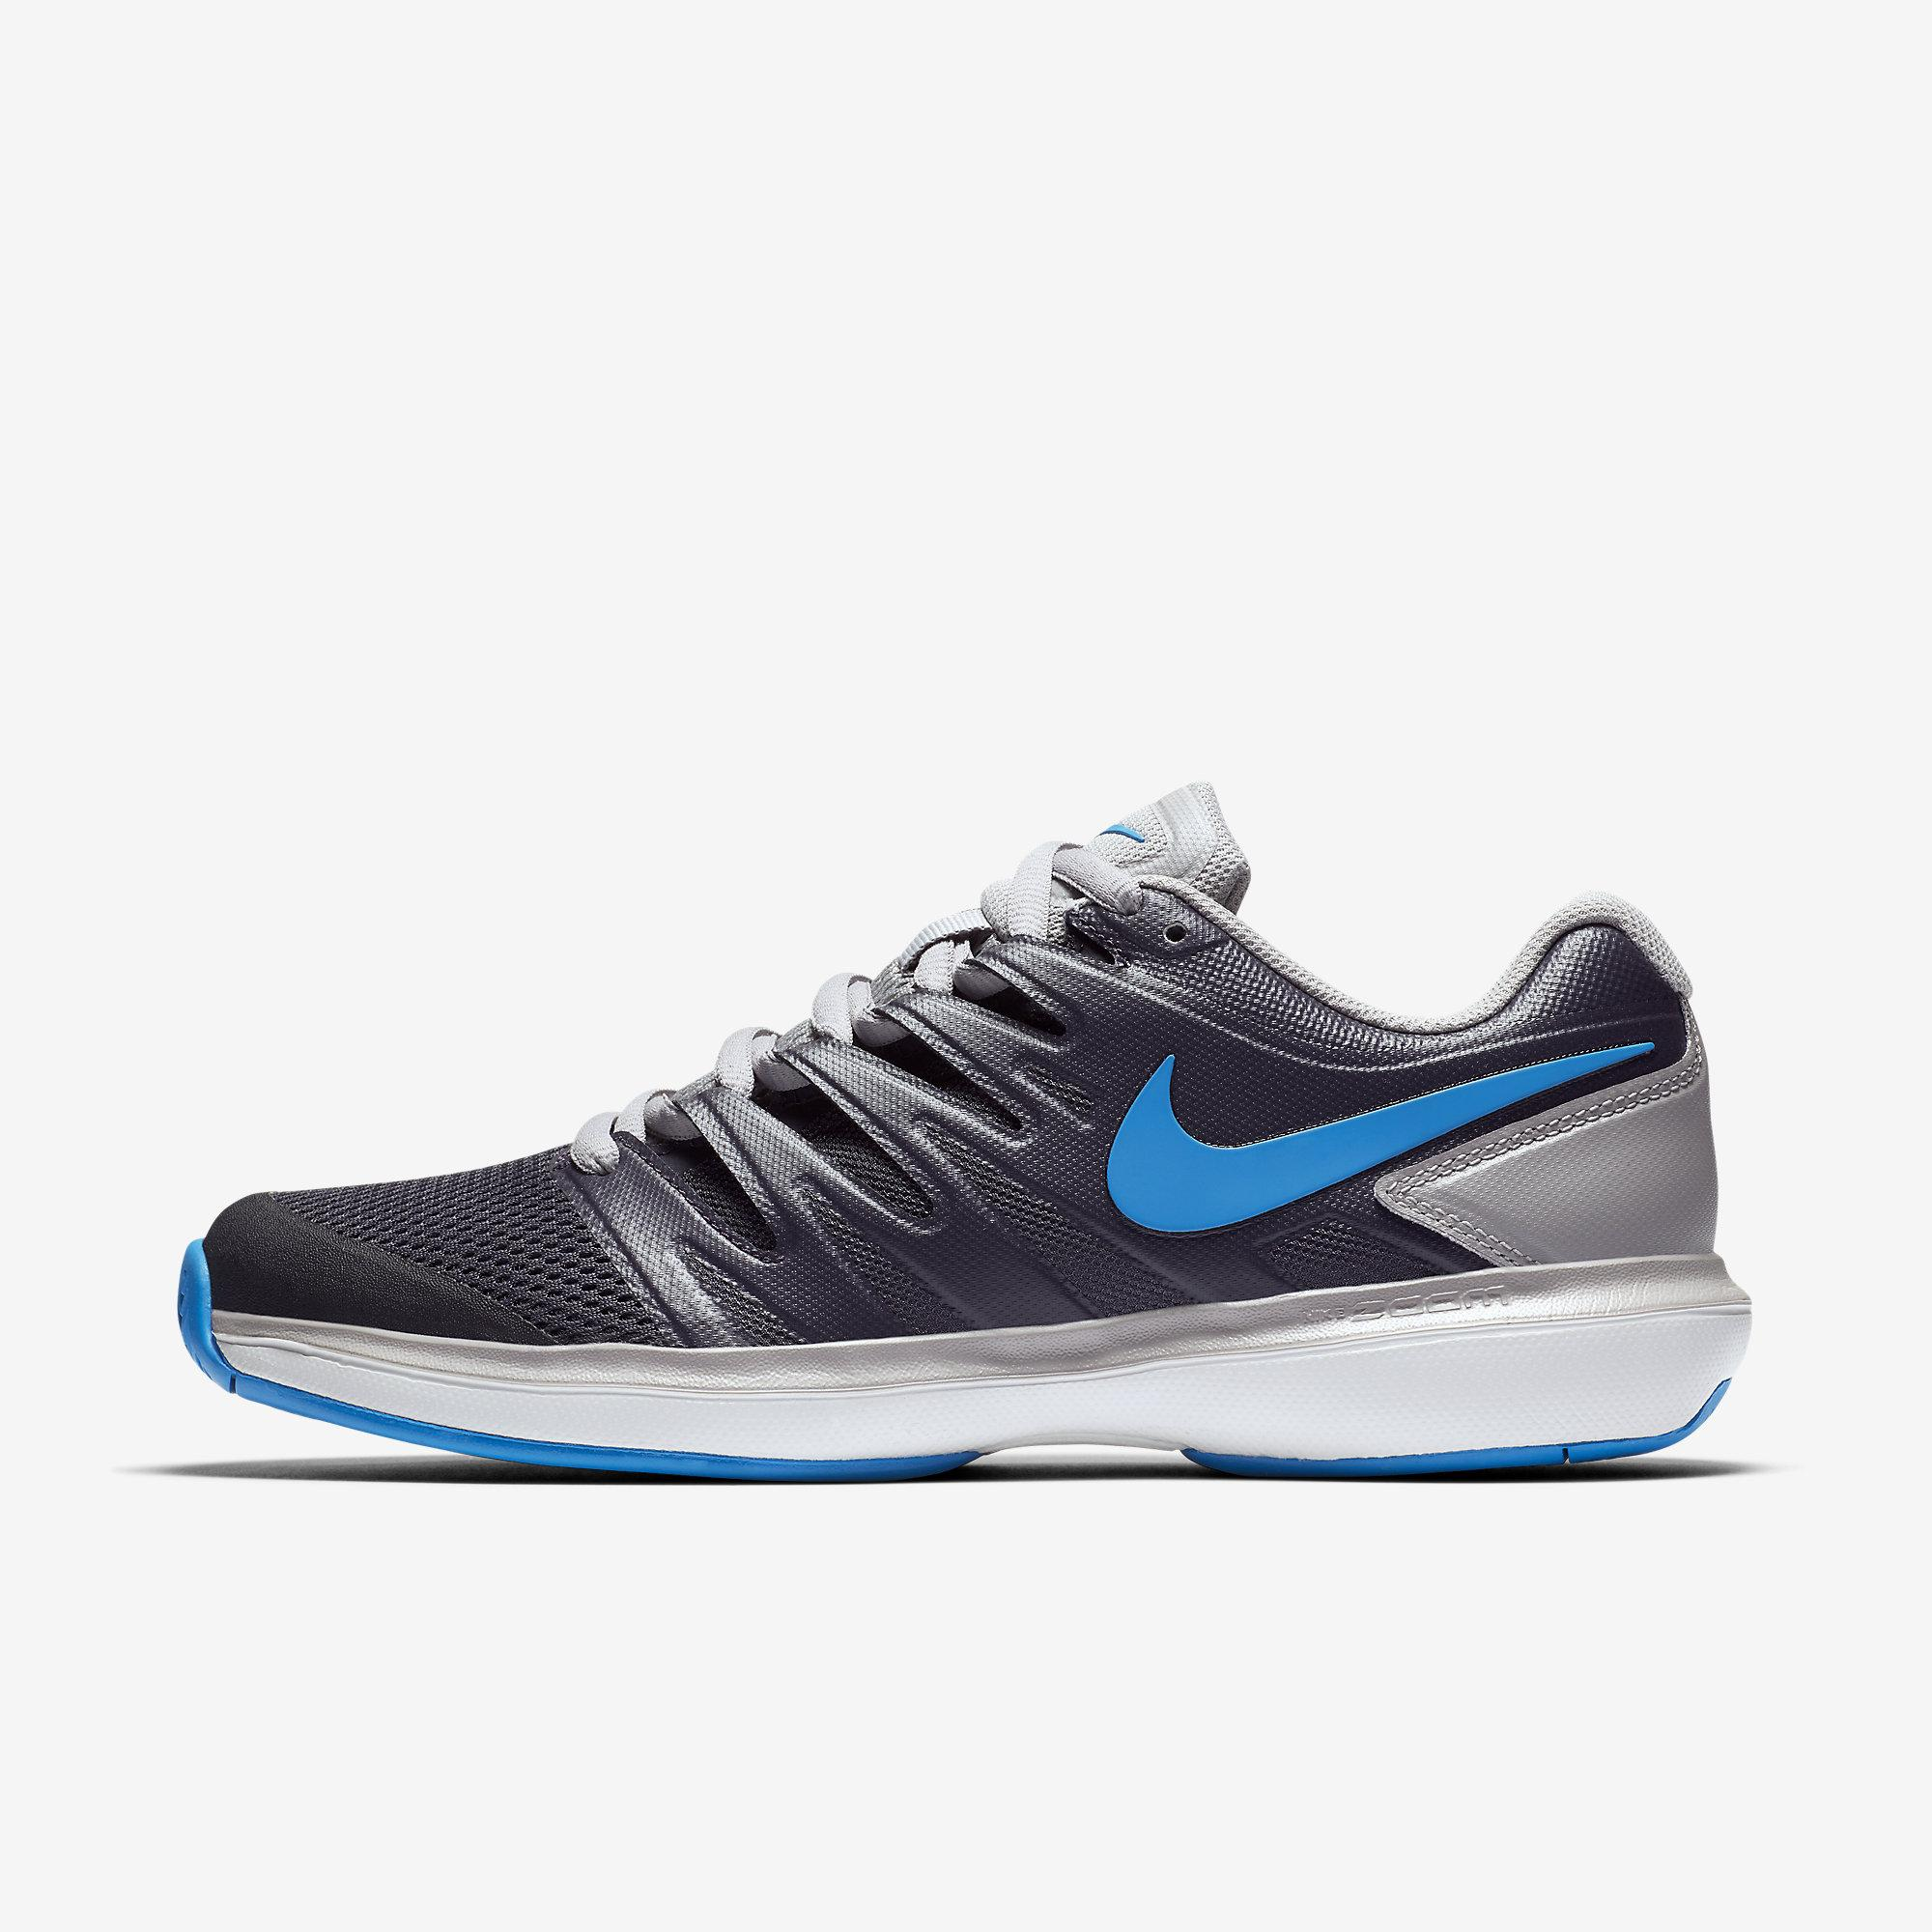 Nike Mens Air Zoom Prestige Tennis Shoes - Gridiron Atmosphere Grey -  Tennisnuts.com 40b2417b7